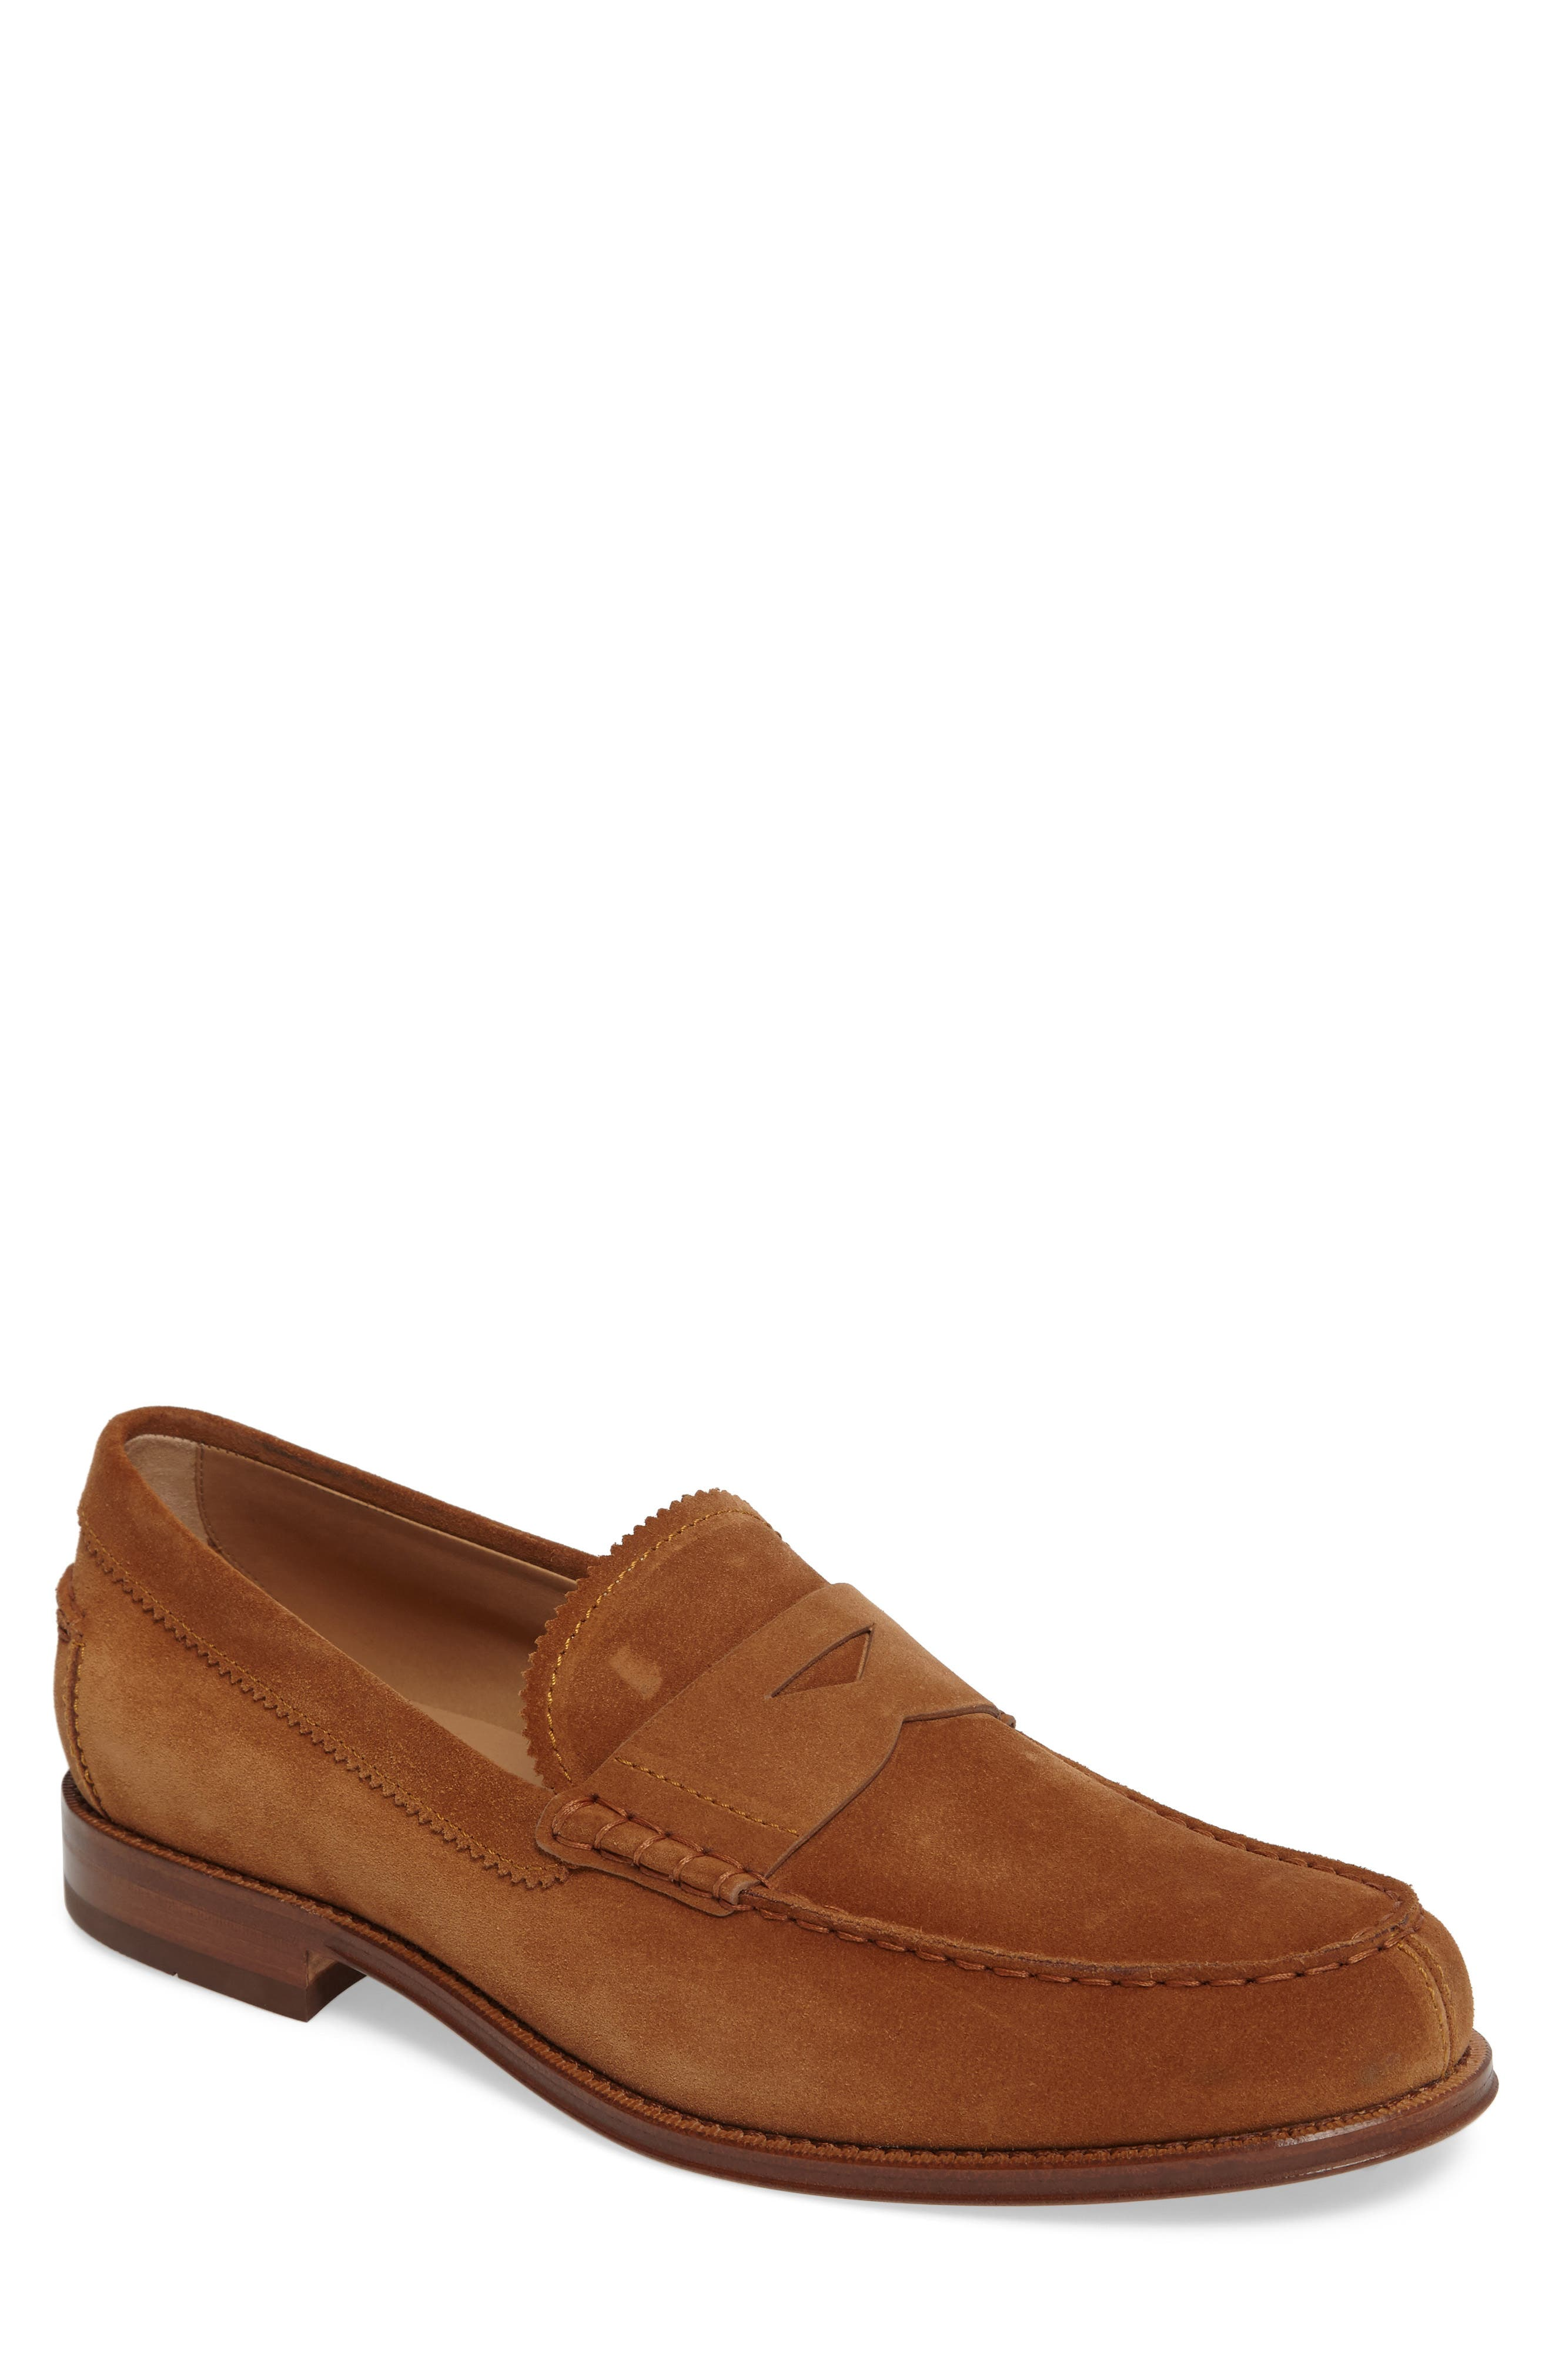 Suede Penny Loafer,                         Main,                         color,